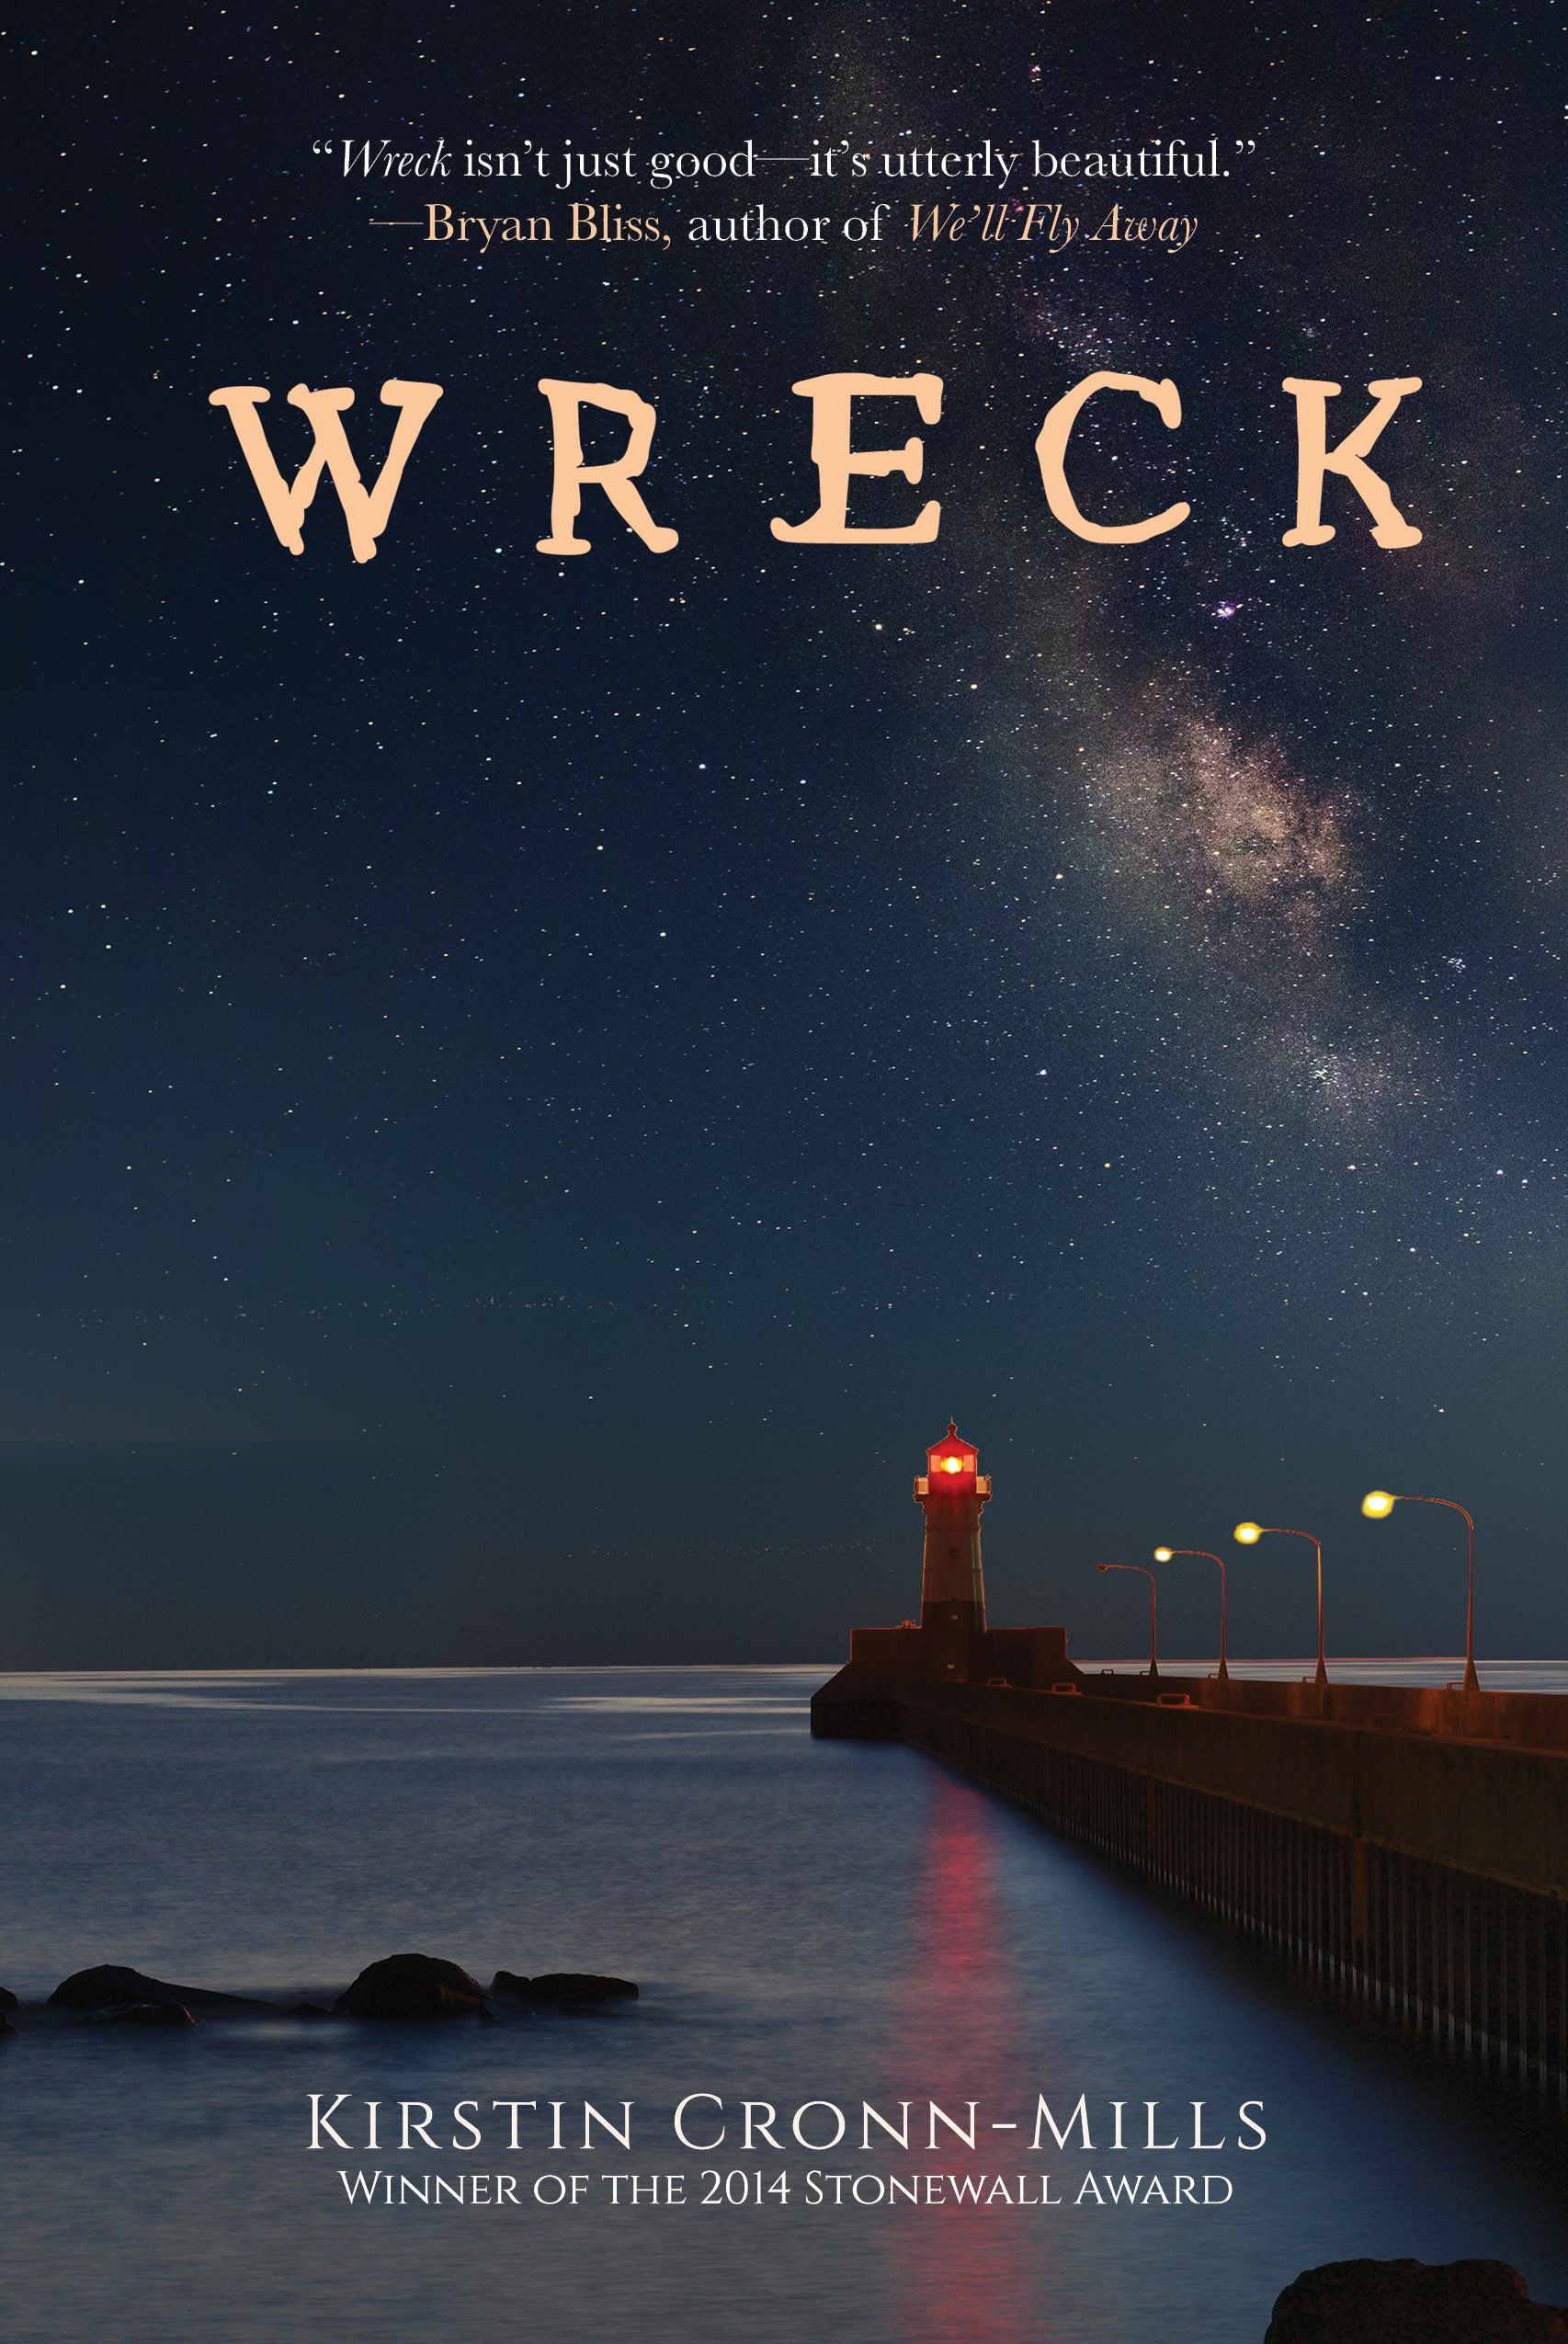 hi-res WRECK cover with blurb